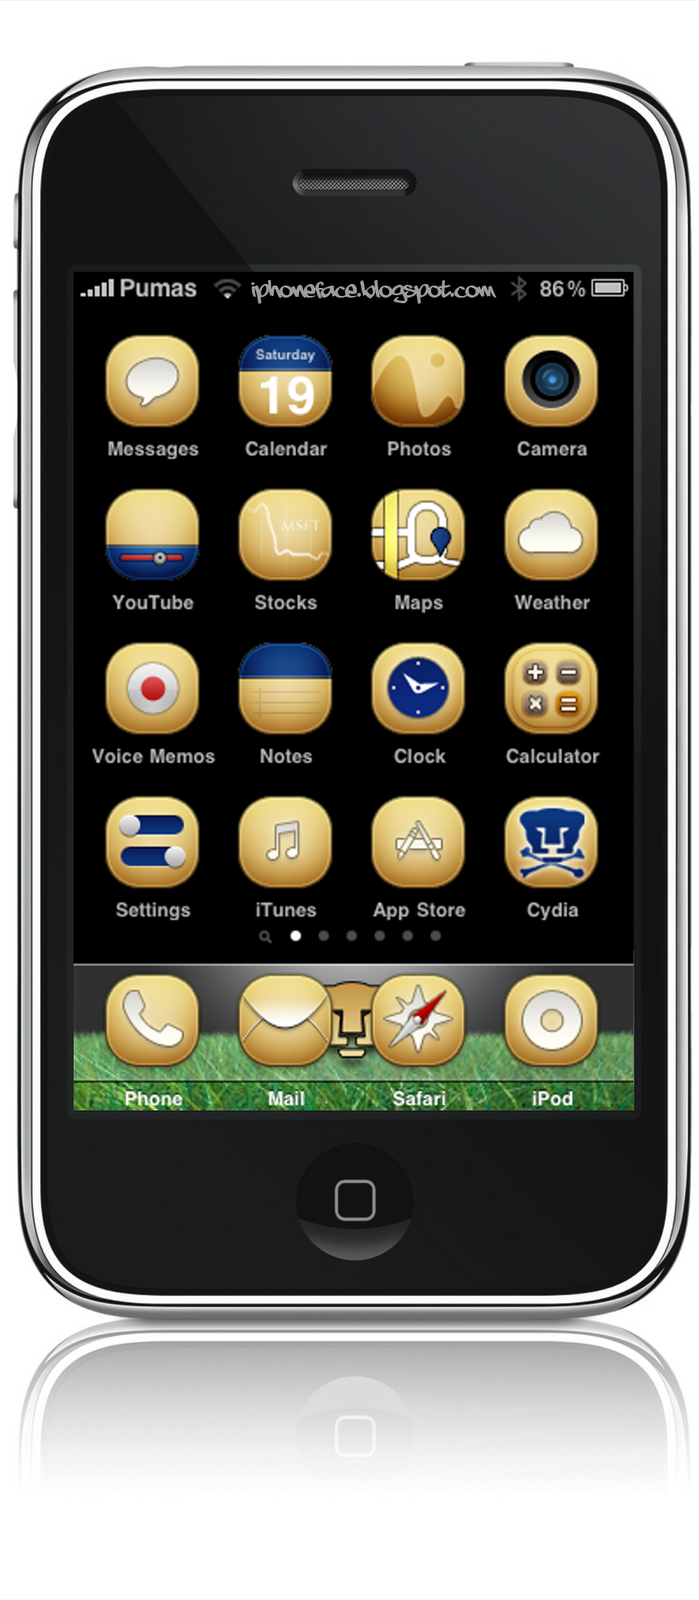 Pumas SD iphone theme, activate SummerBoard Mode.